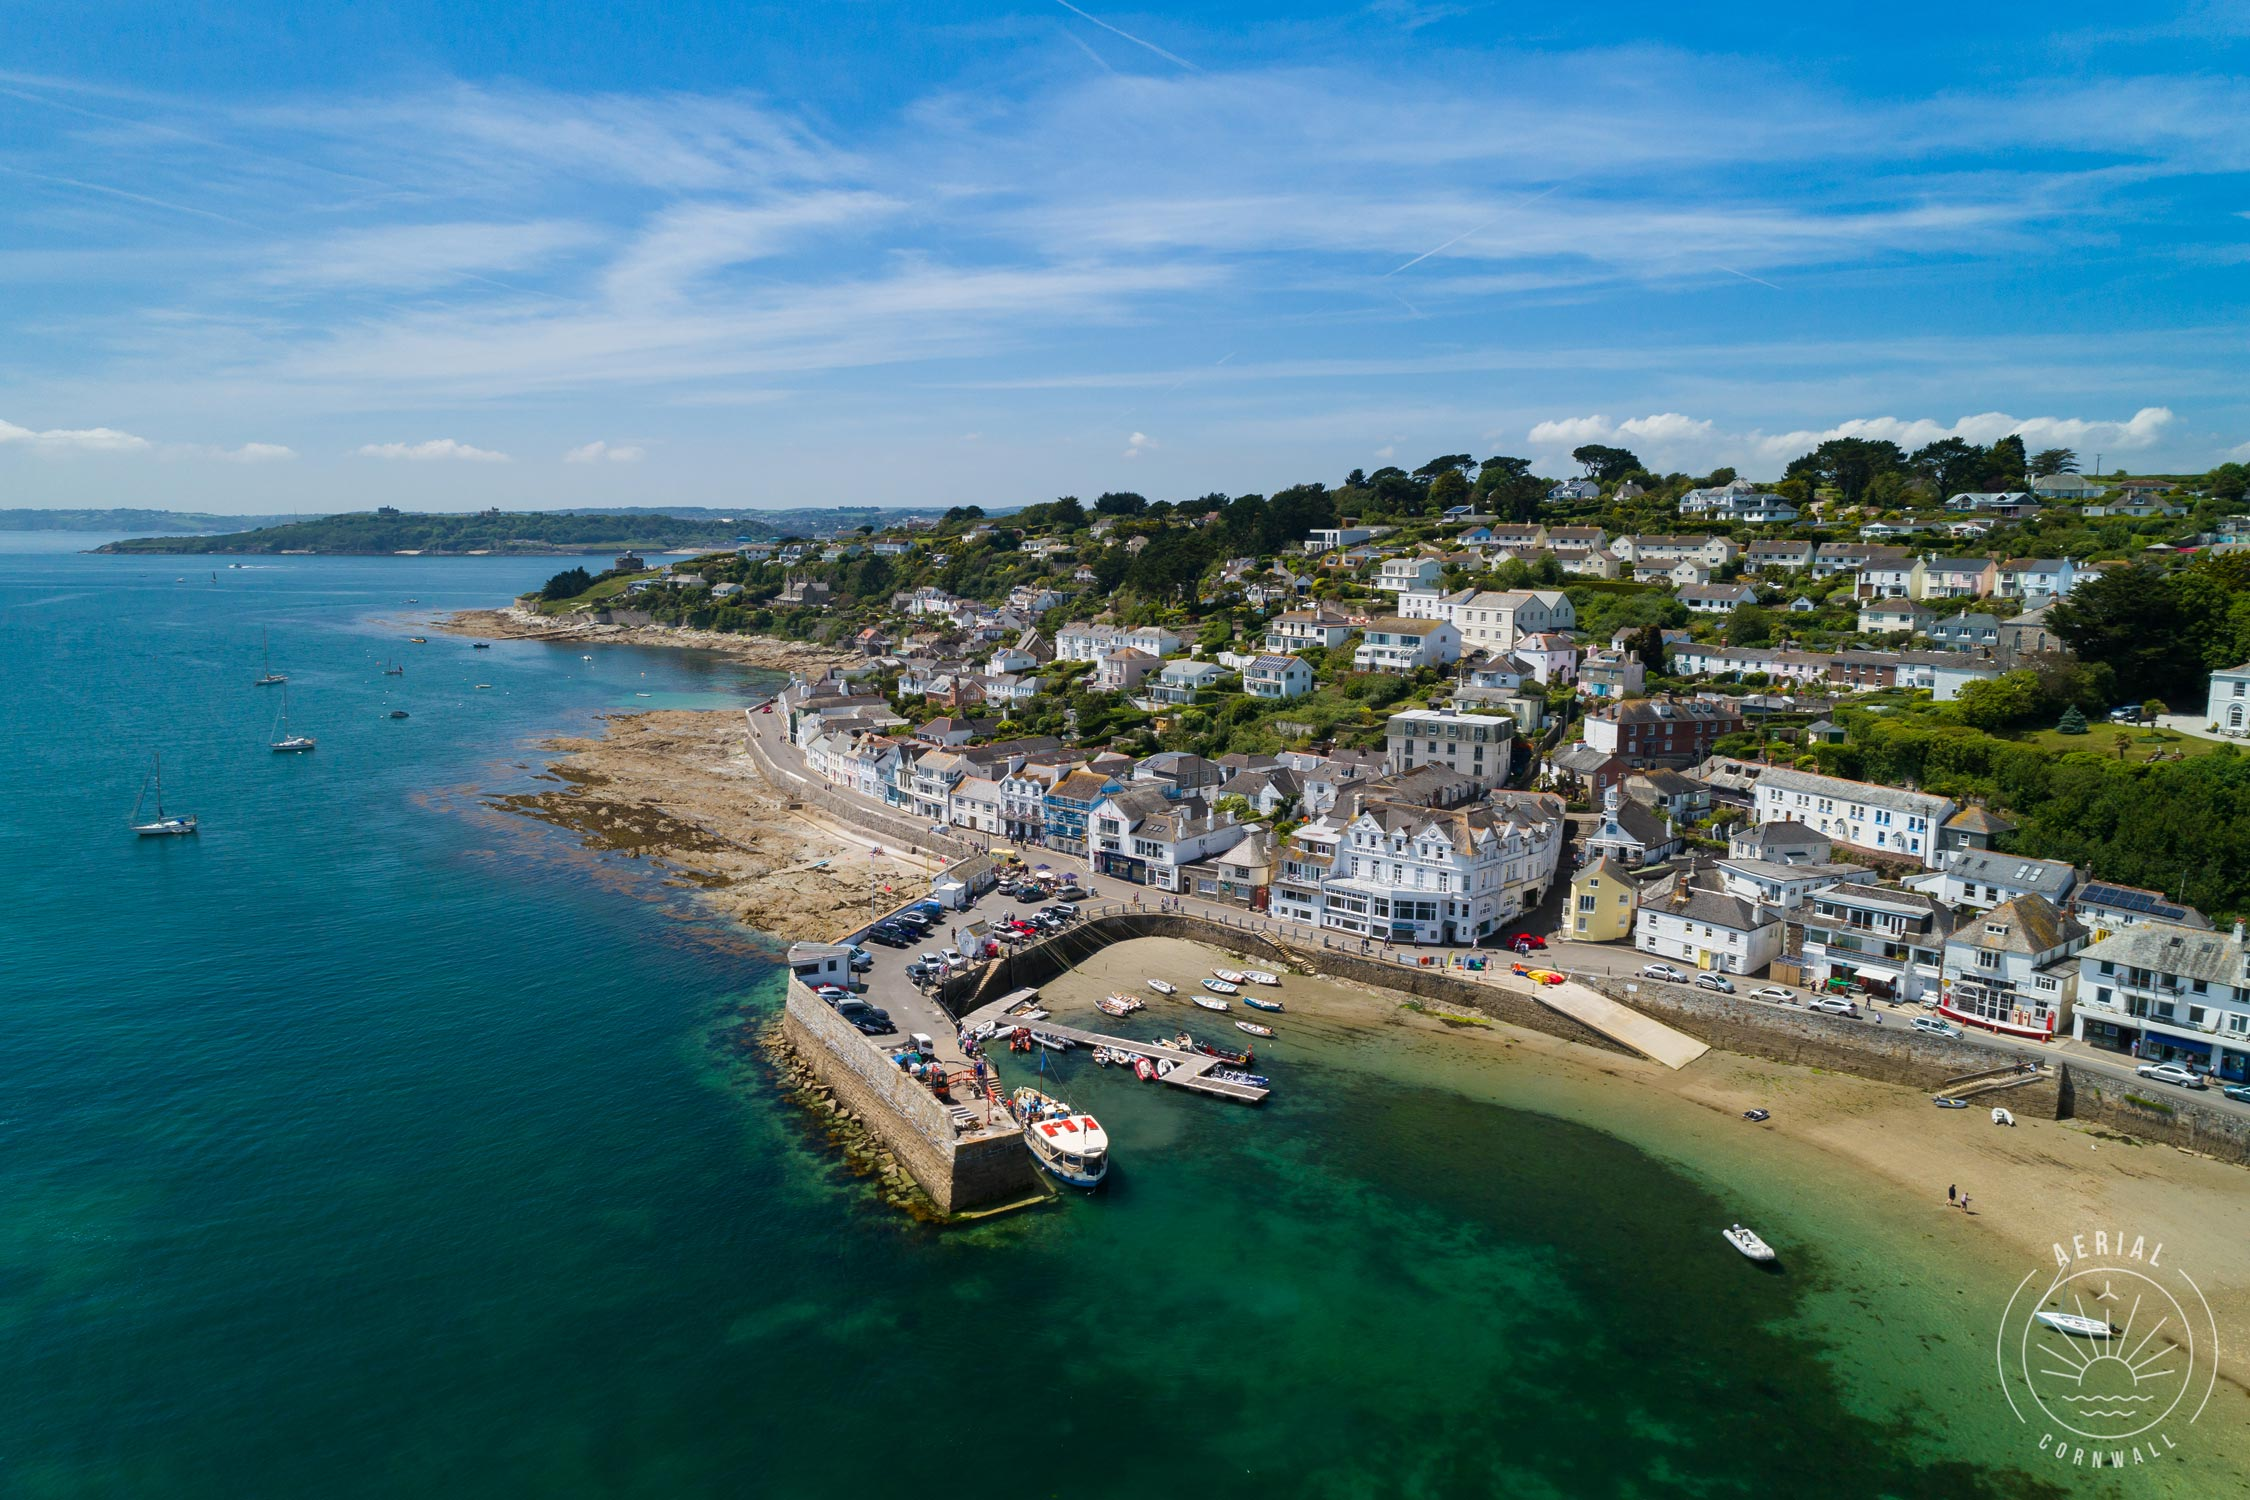 Location: St Mawes Harbour